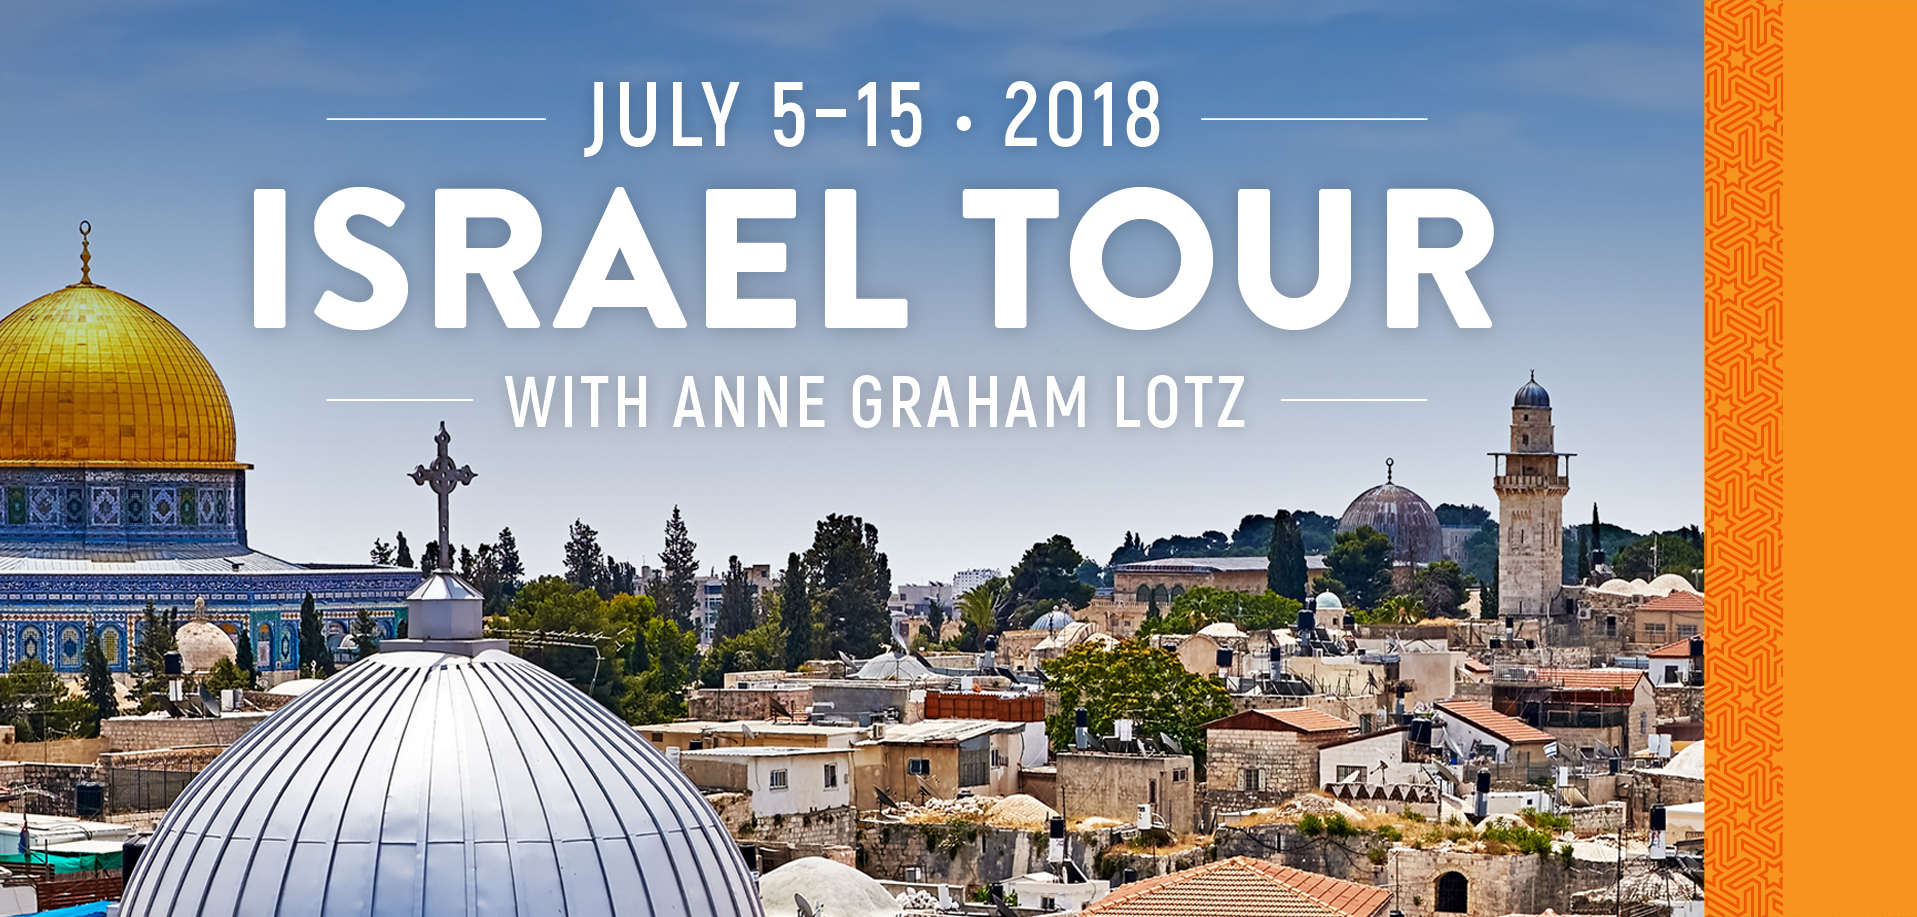 Take a Christian TourWX with Anne Graham Lotz - Christian Tour to Israel - July 5-15, 2018